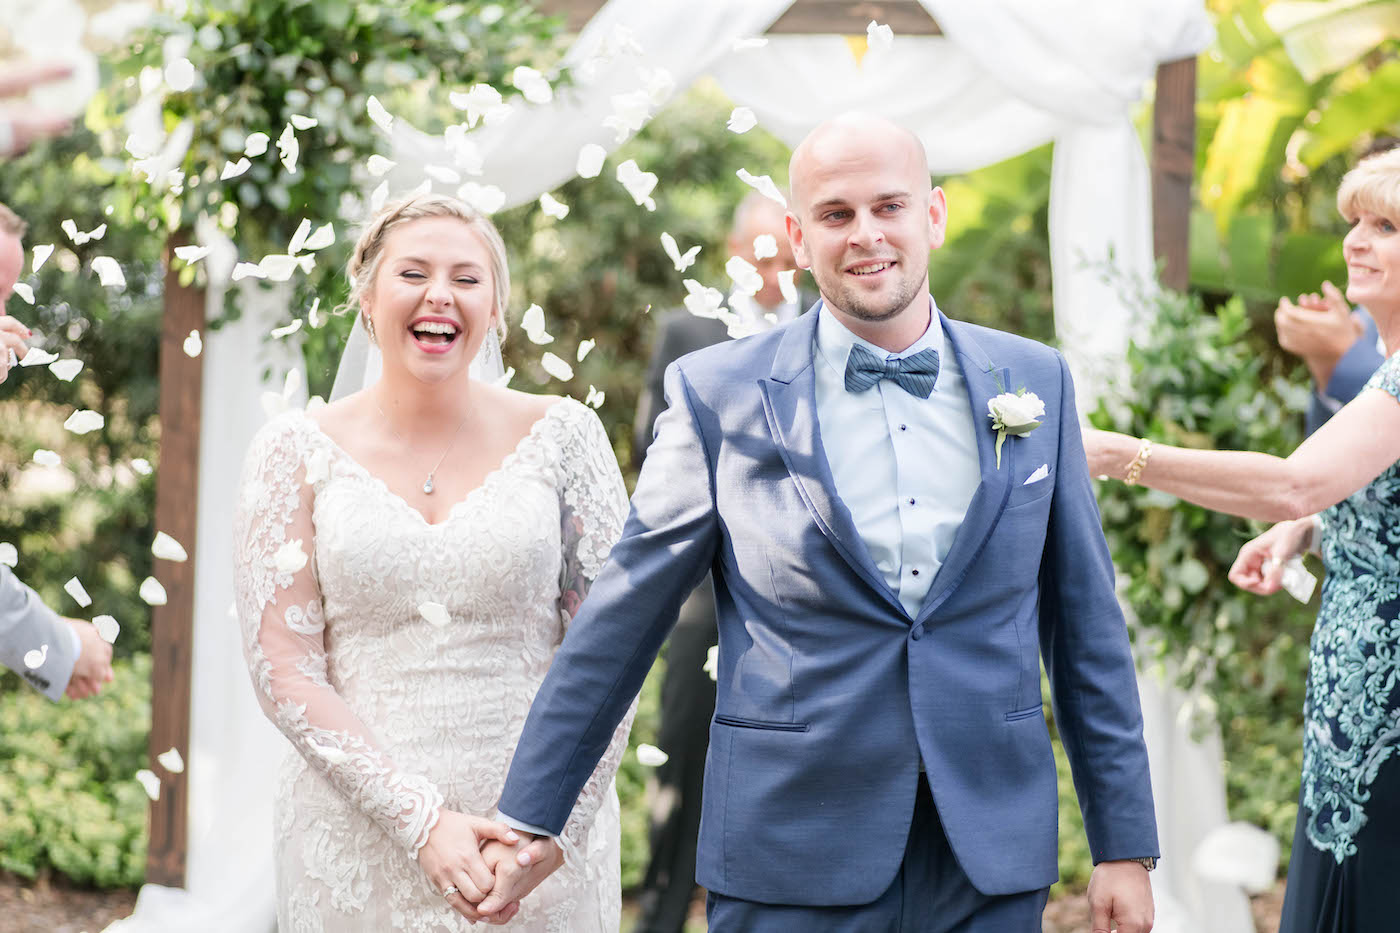 Bride and Groom Walking Down the Aisle in Rose Petal Toss   Ivory Lace Long Sleeve V Neck Bridal Gown and Groom in Blue Suit with Bow Tie